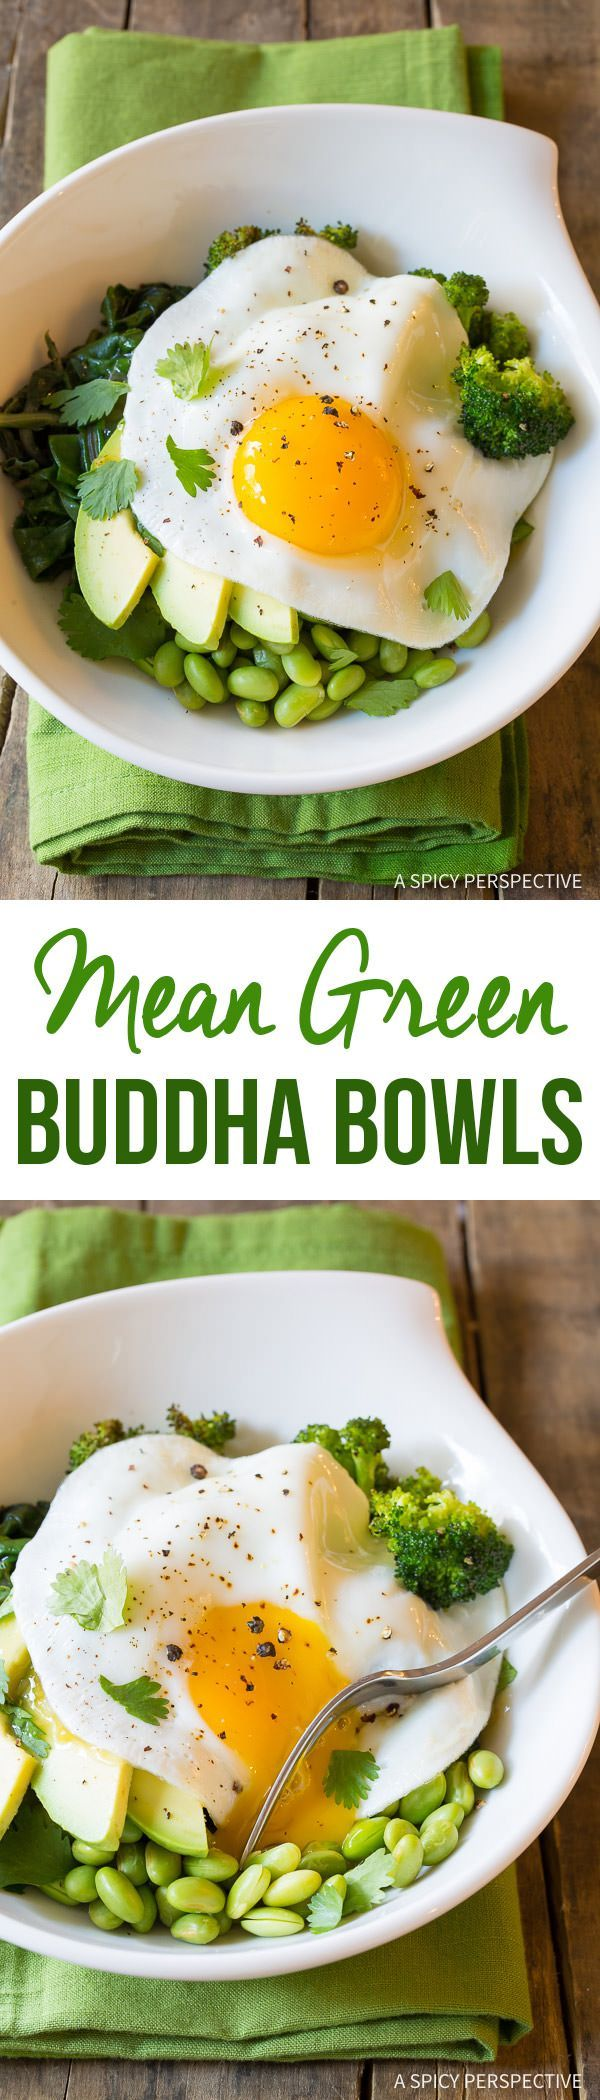 Healthy Vegetarian Mean Green Buddha Bowl Recipe (Vegan Option!) | ASpicyPerspective.co